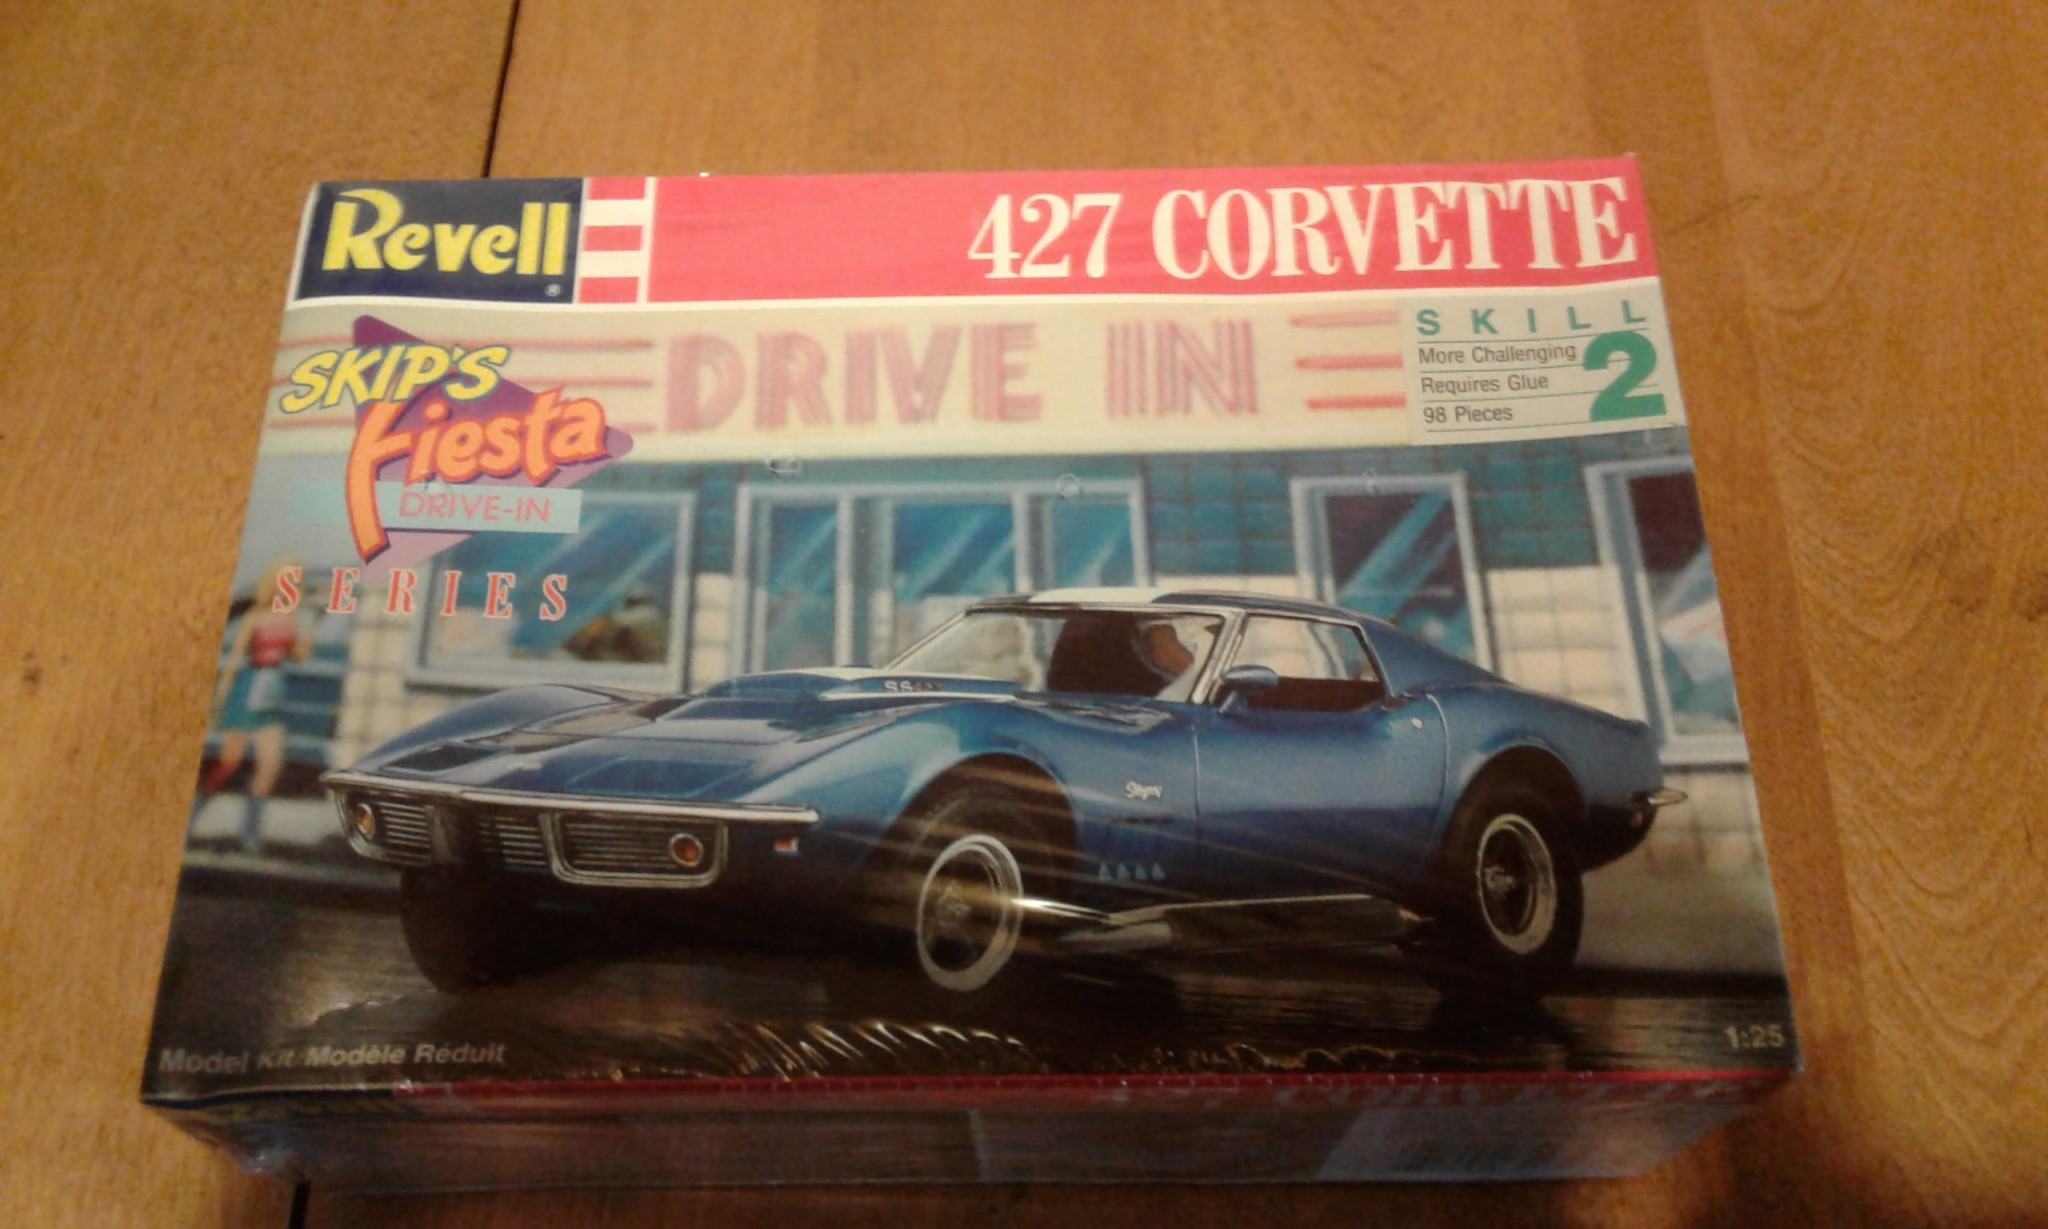 REVELL BALDWIN MOTION 427 CORVETTE MODEL CAR KIT 7427 SKIPS FIESTA SERIES SEALED